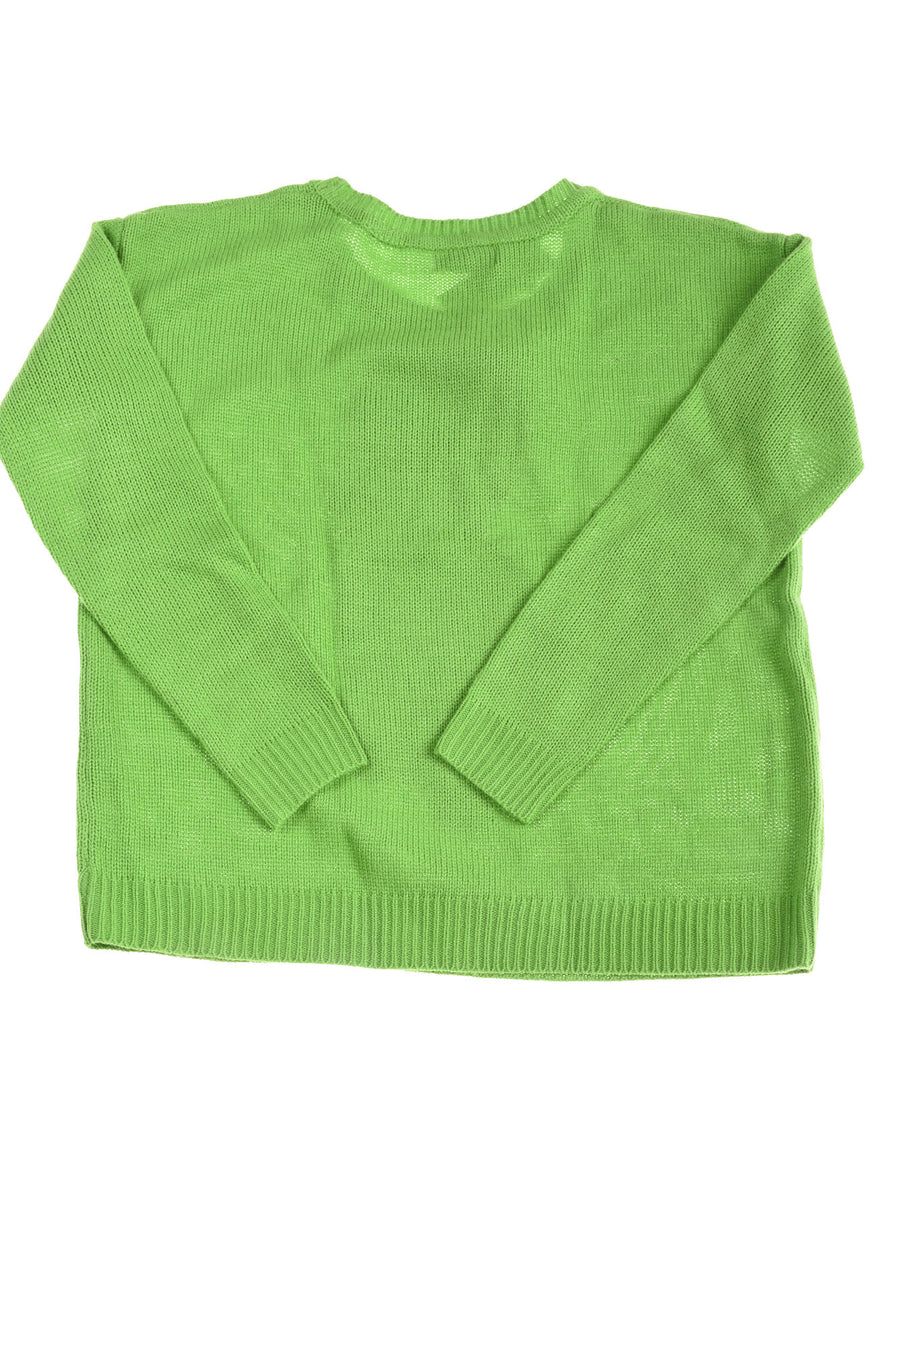 NEW Faith & Zoe Women's Sweater X-Large Green